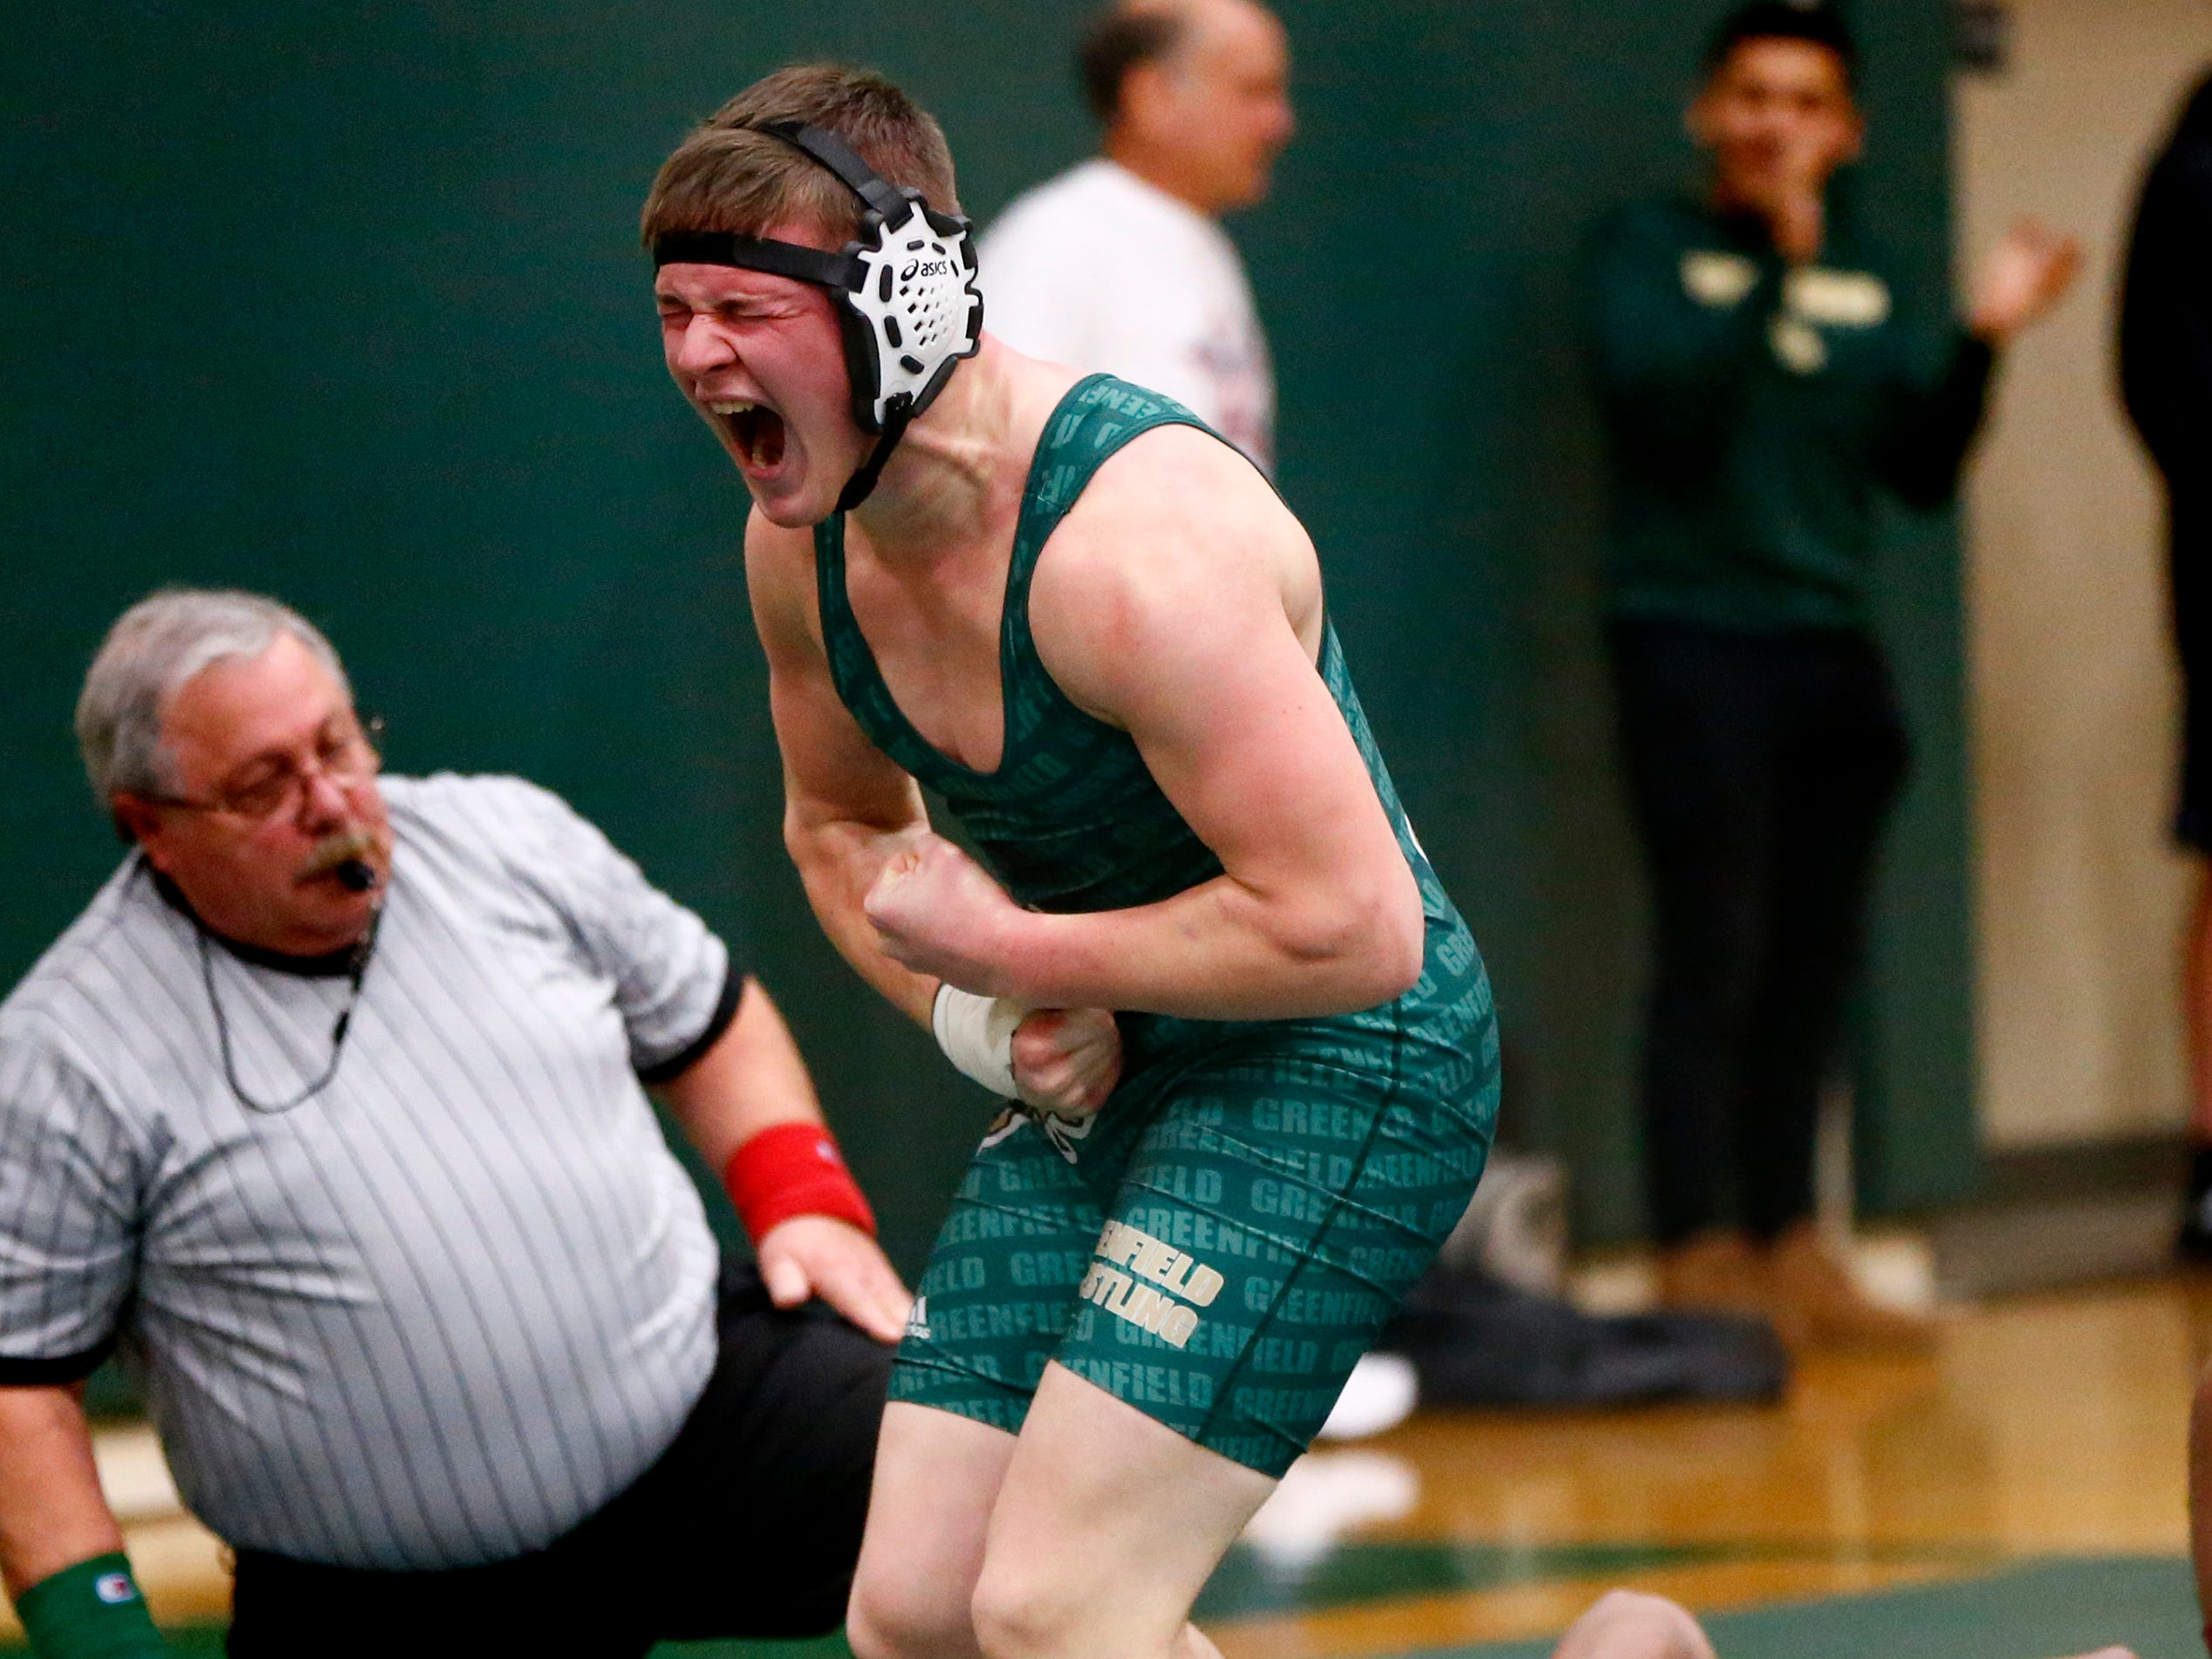 Greenfield's Matt Fischer reacts after pinning Milwaukee Lutheran's Josh Boyd in a 182-pound match during a dual meet at Greenfield on Nov. 29.